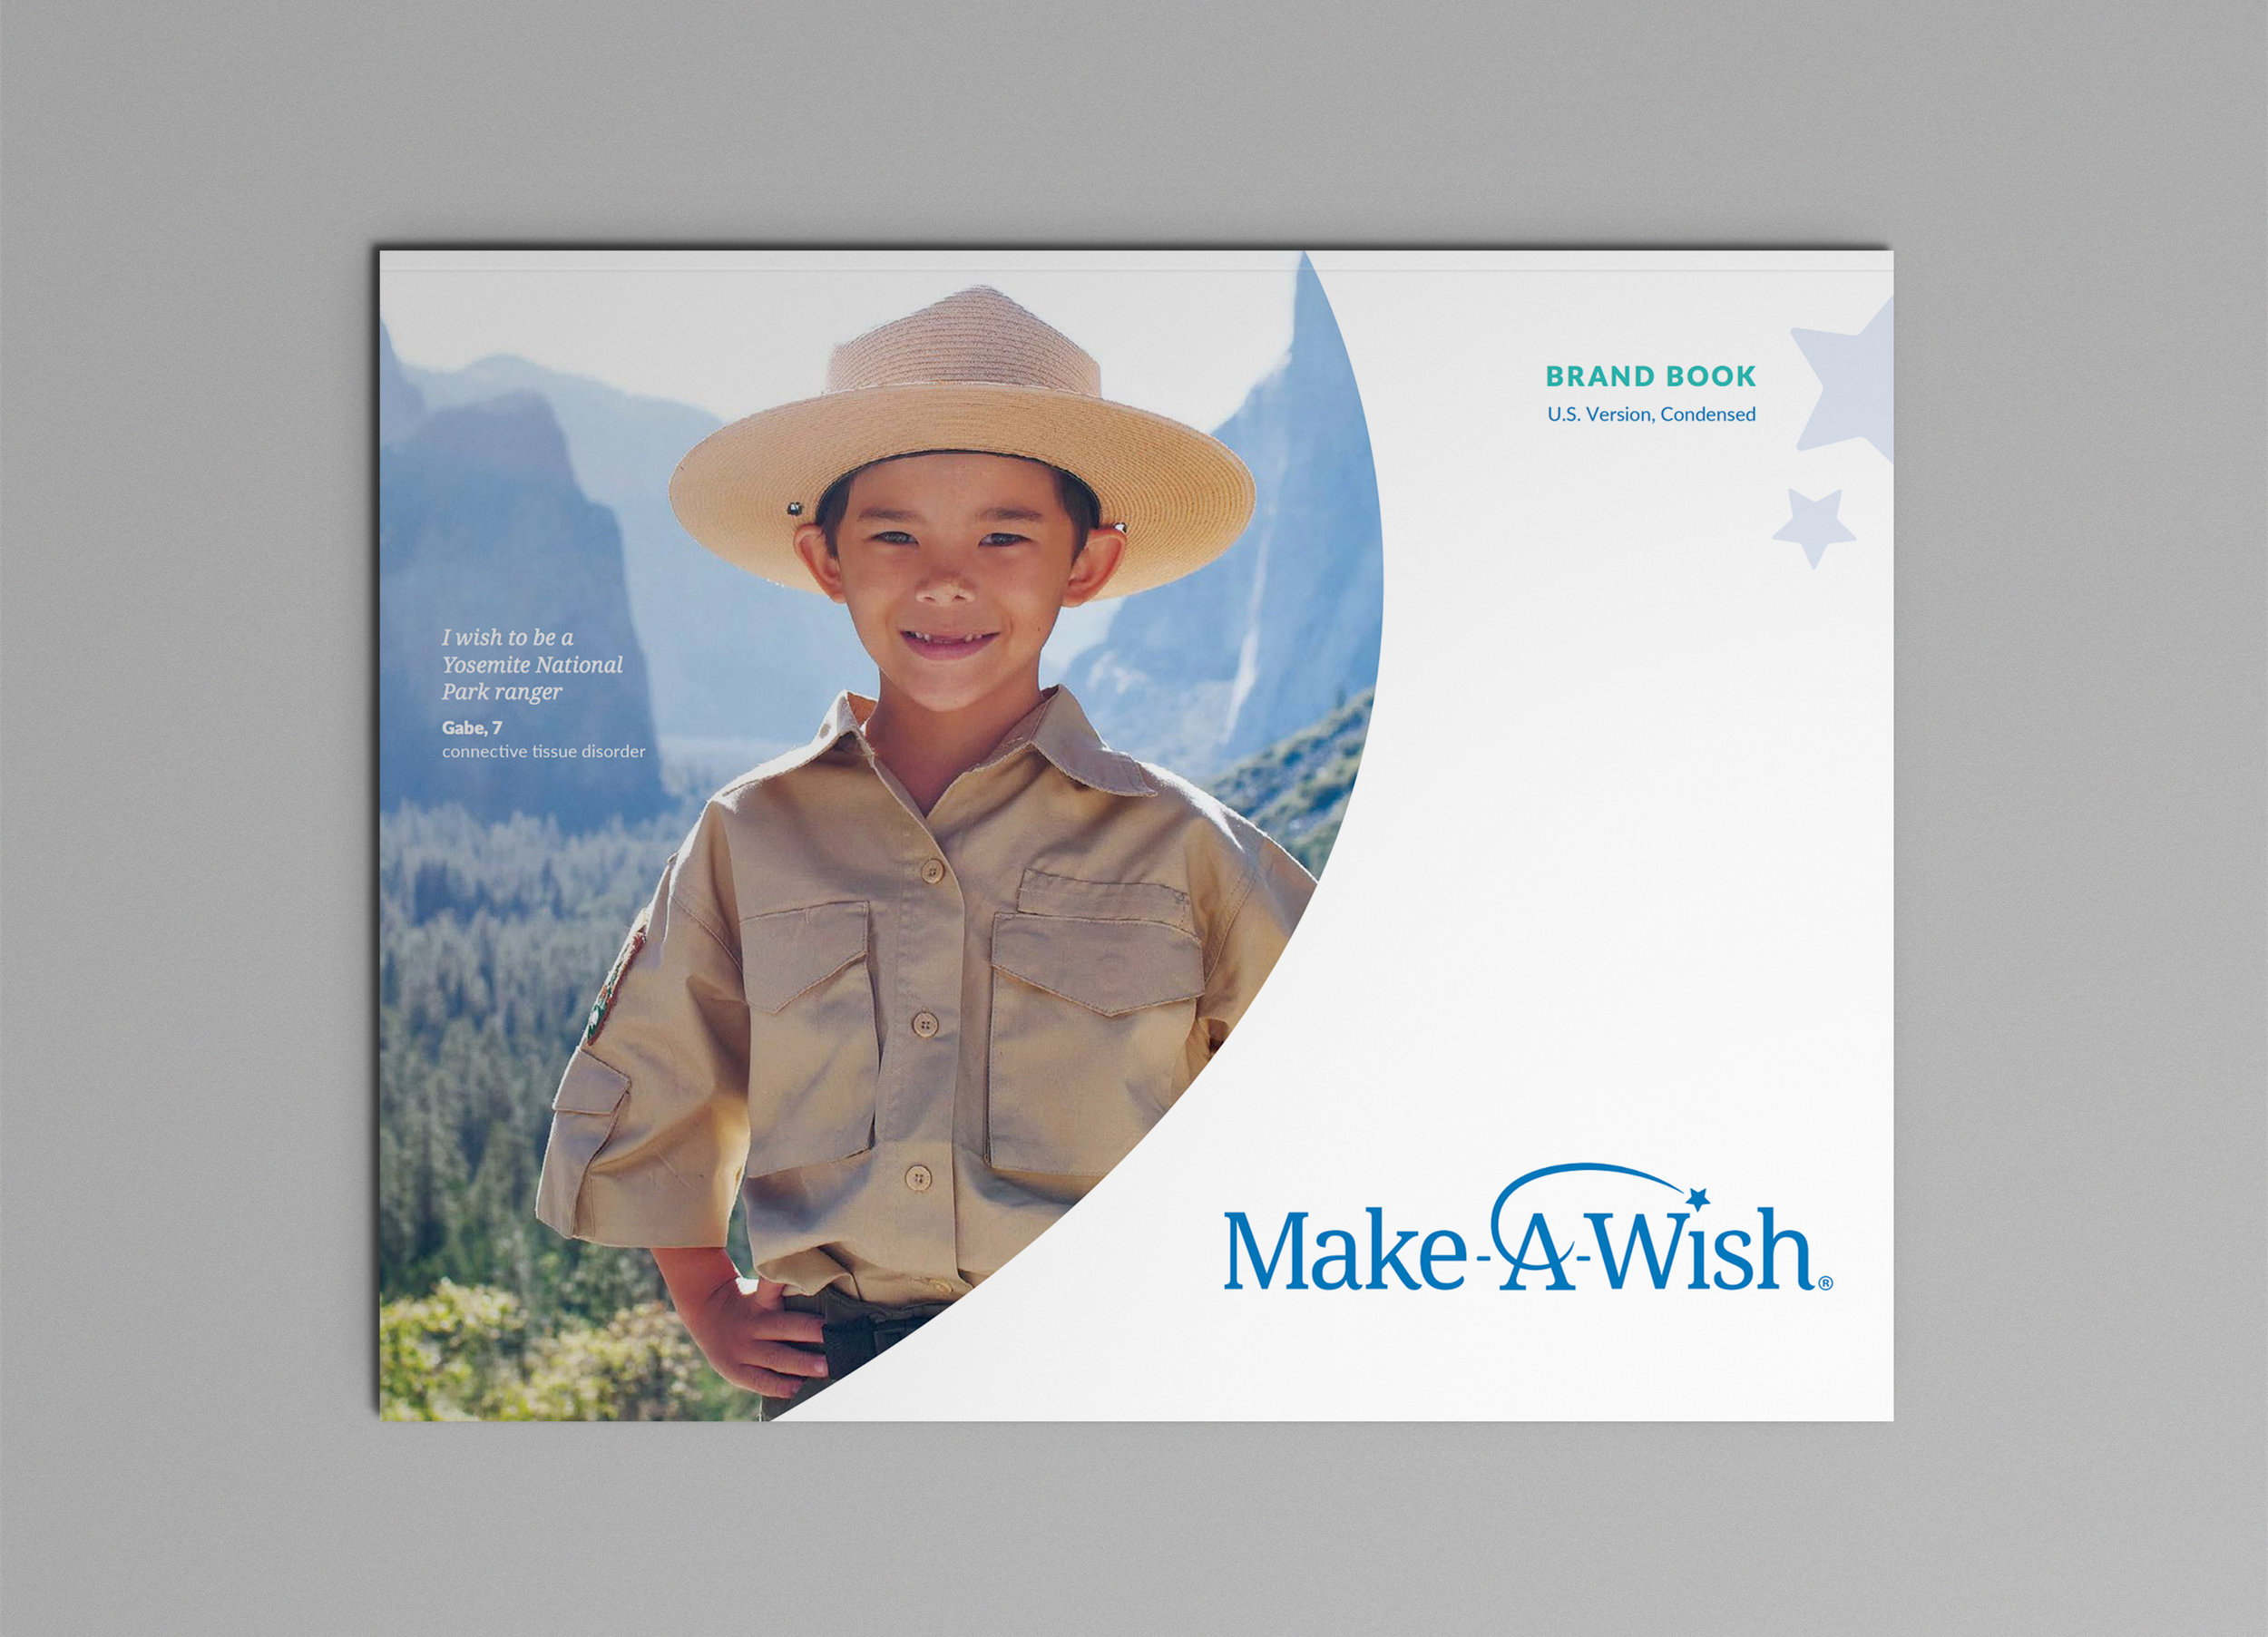 Copy of Make-A-Wish® brand book